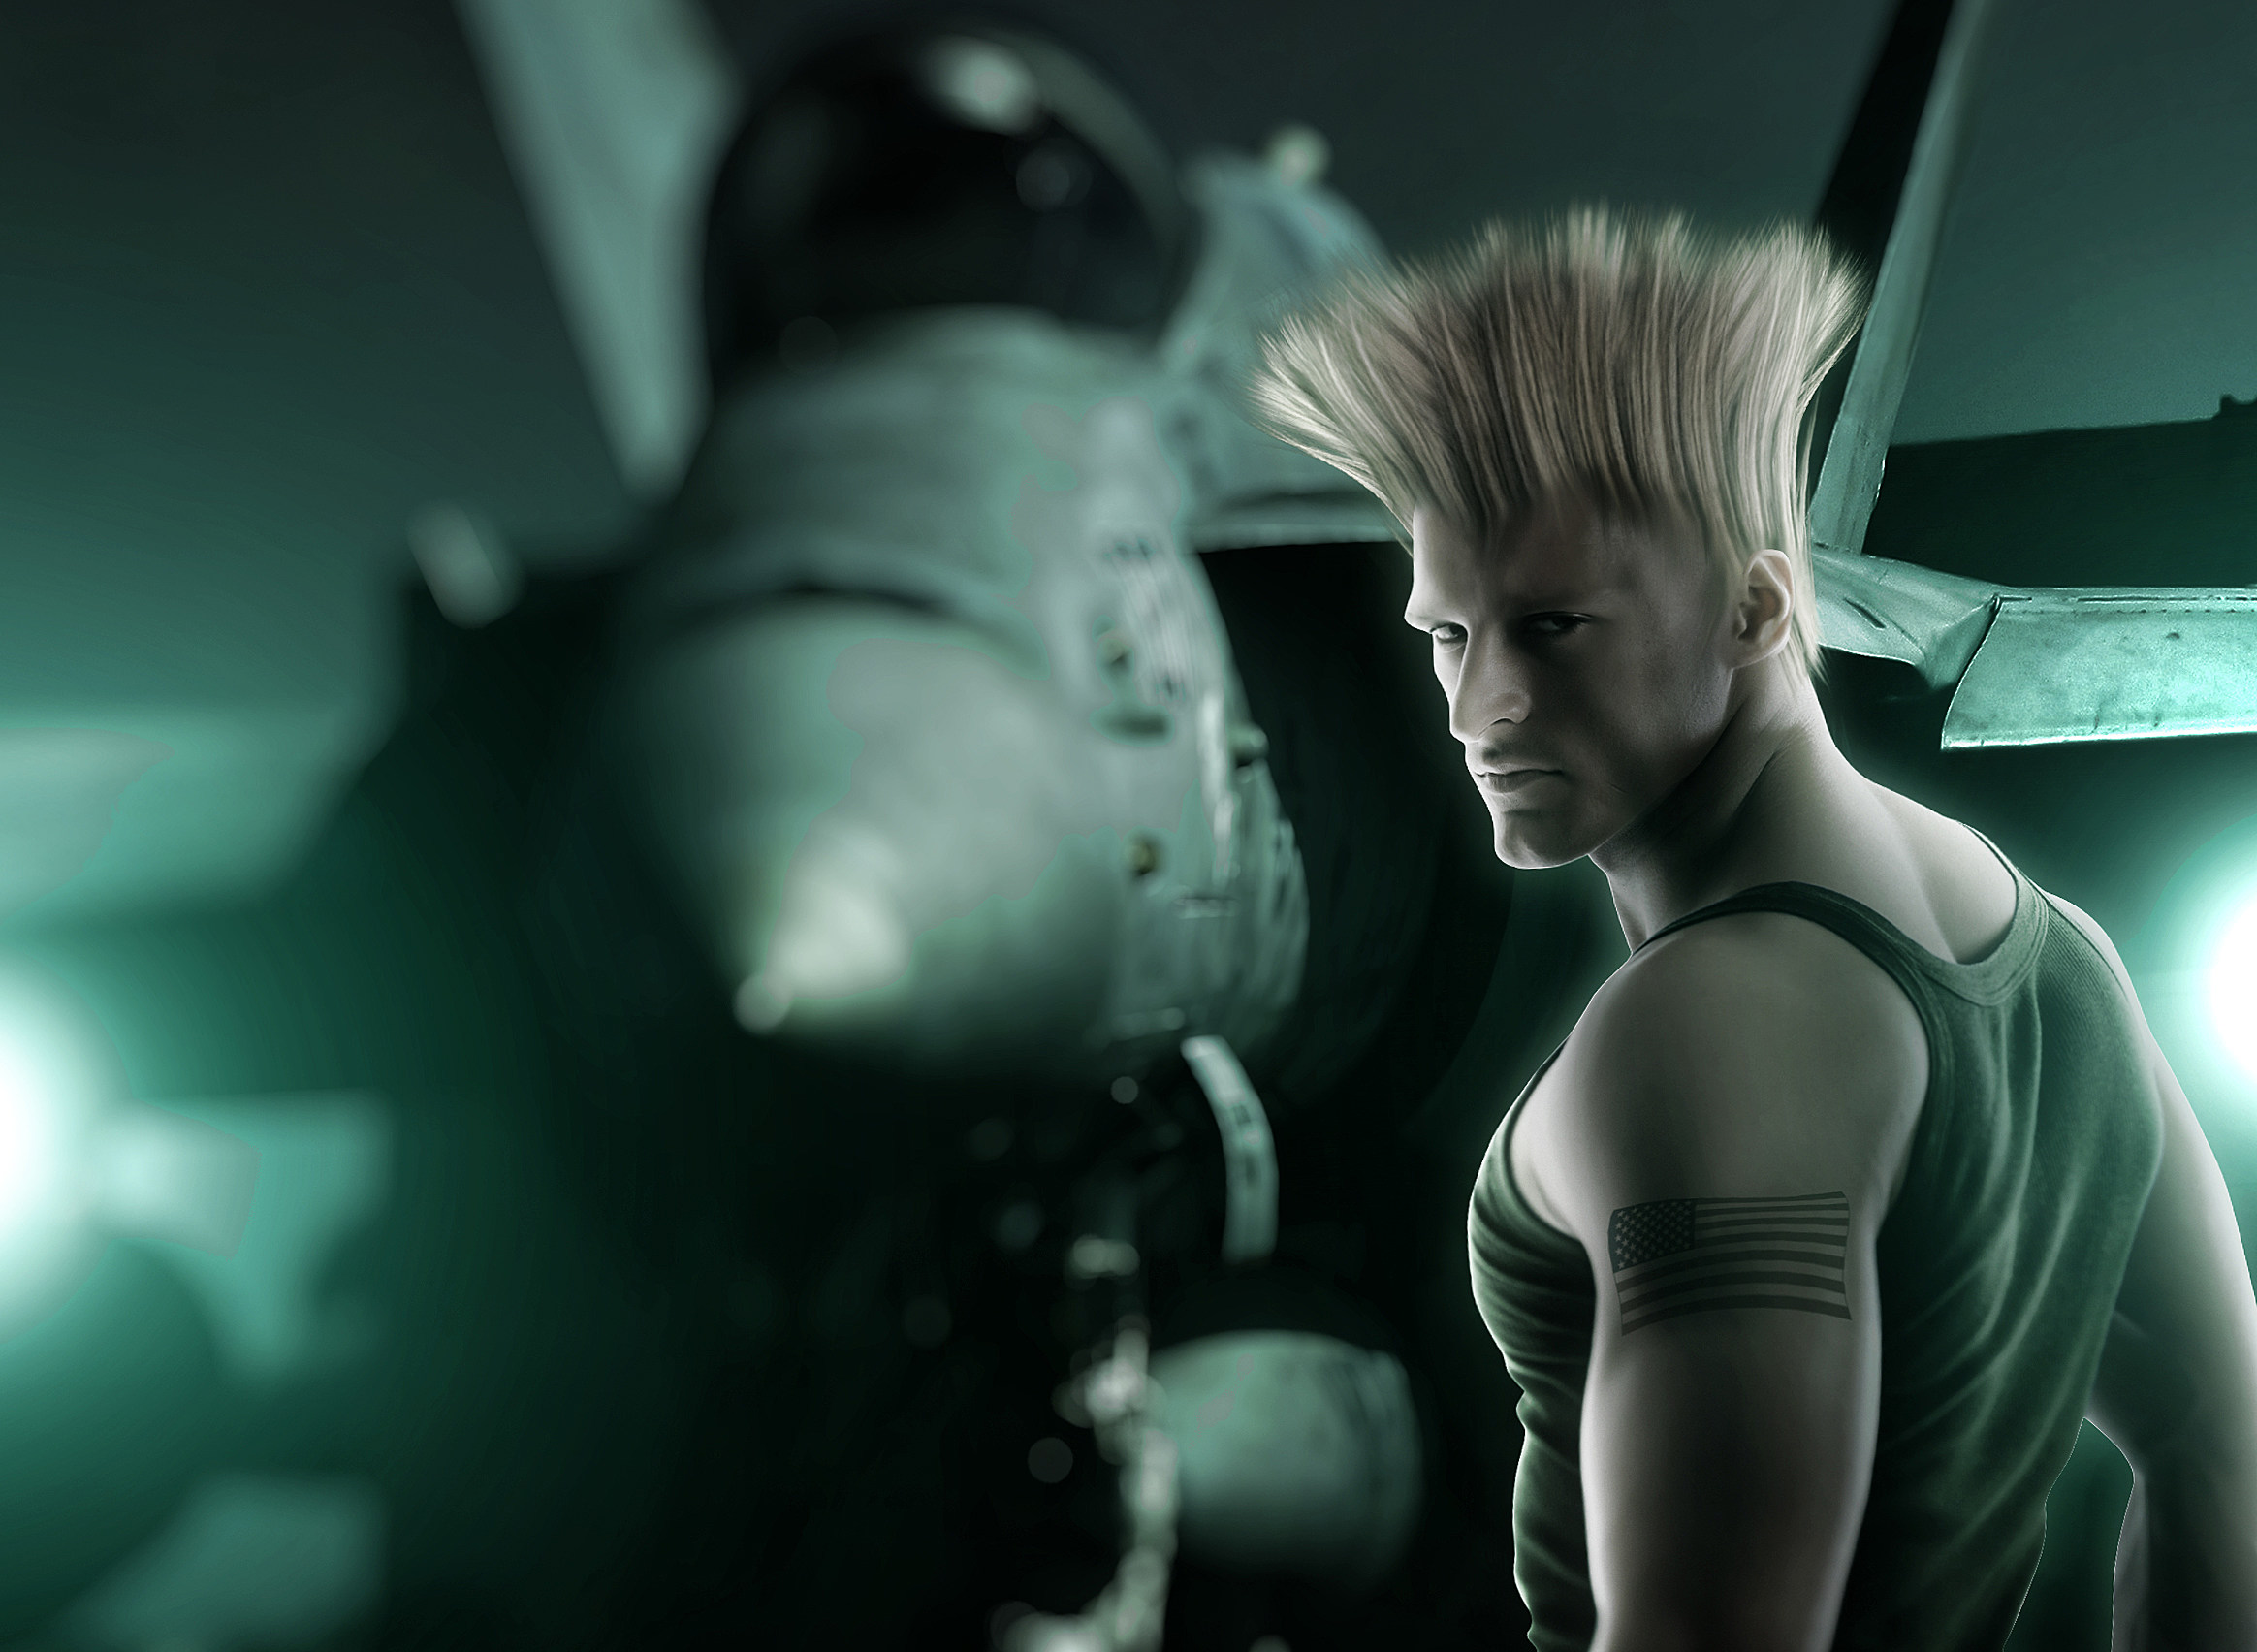 Hyper Real Super Street Fighter IV Art Featuring Guile src=